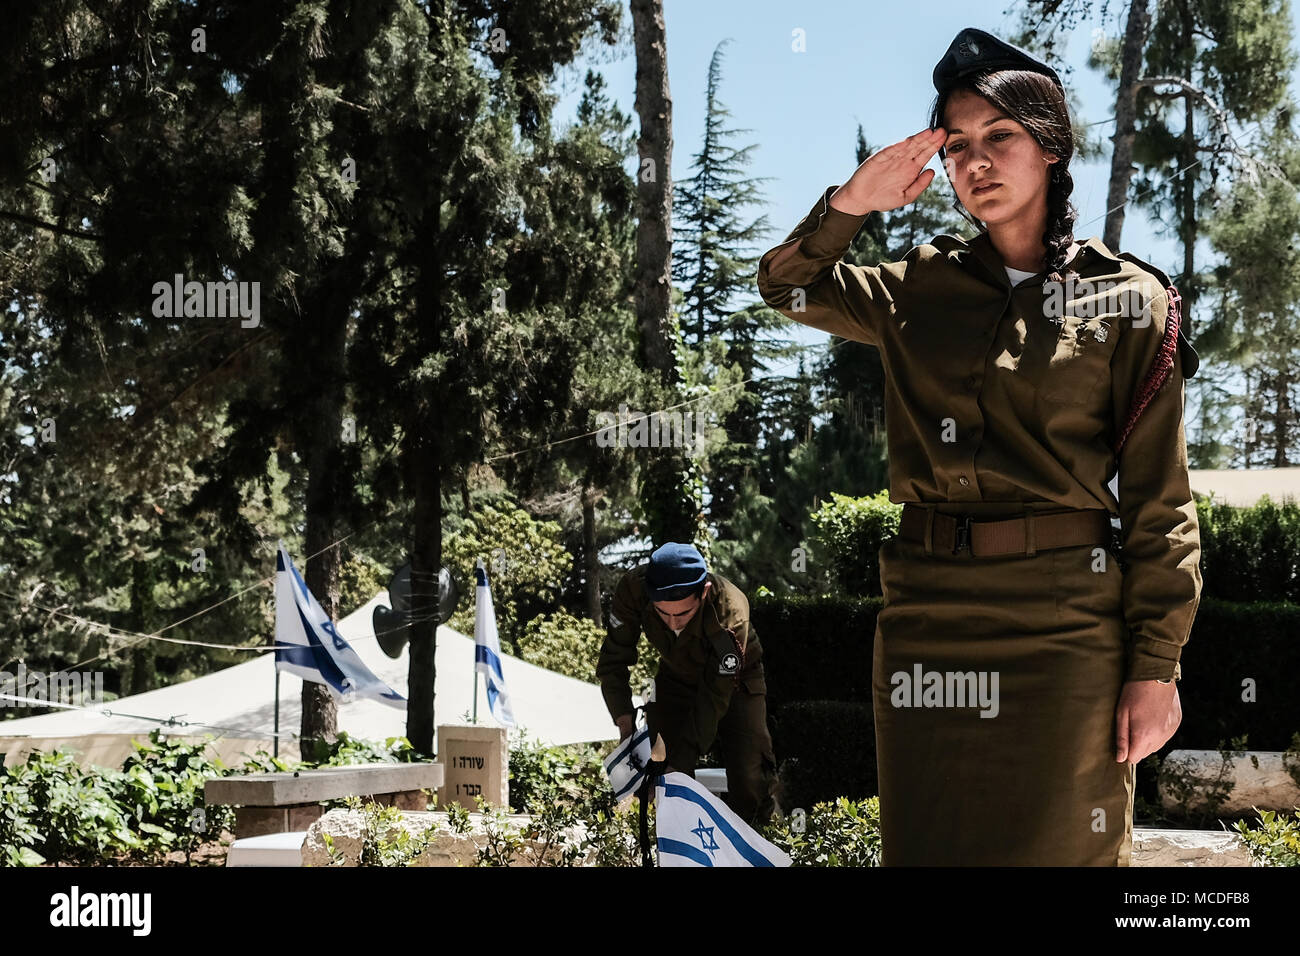 1f74a091de3 Military Ribbons Stock Photos   Military Ribbons Stock Images - Alamy